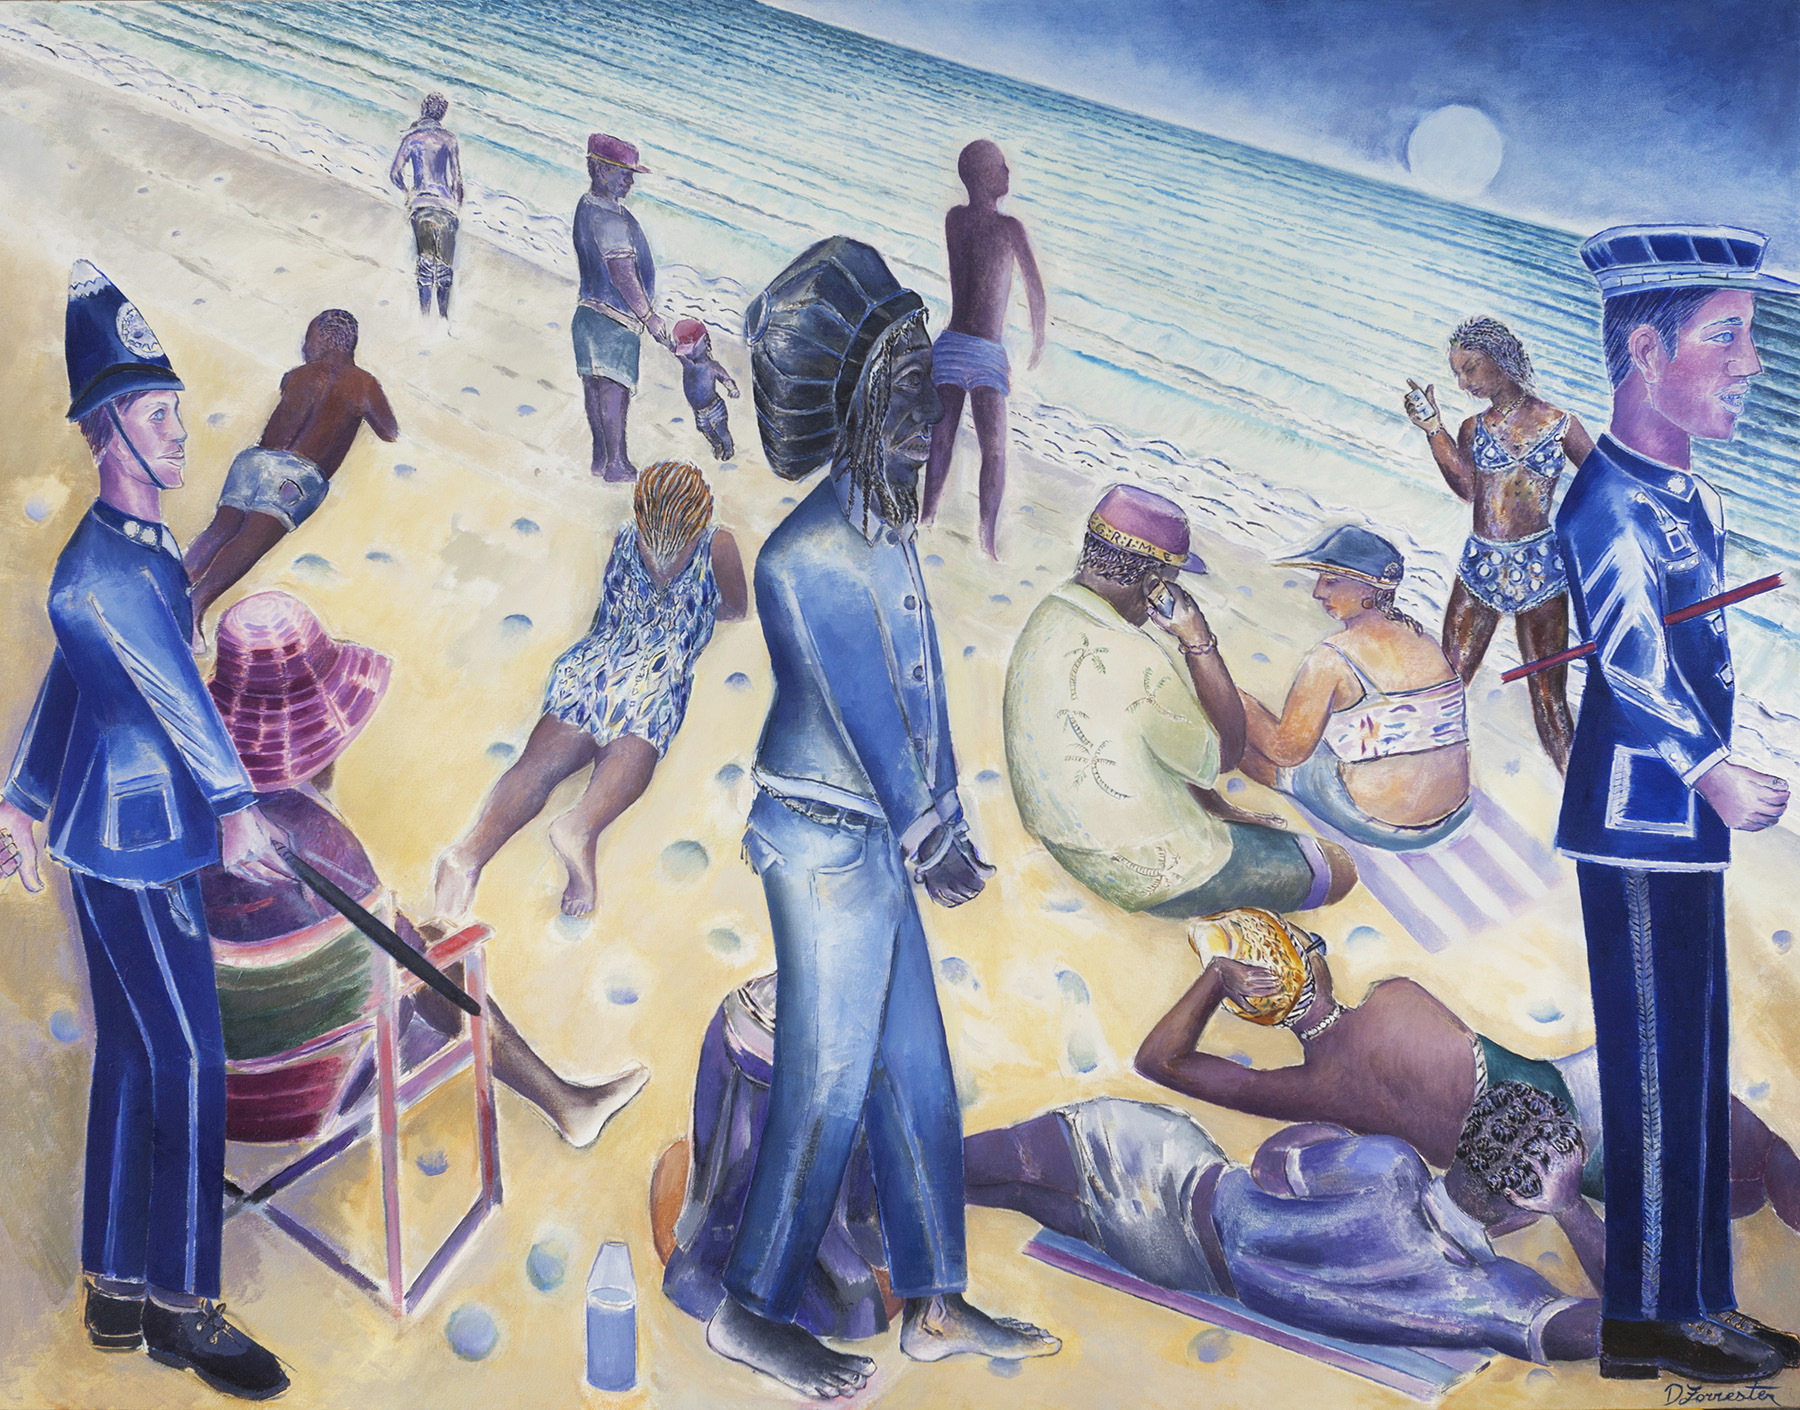 Denzil Forrester, From Trench Town to Porthtowan, 2016